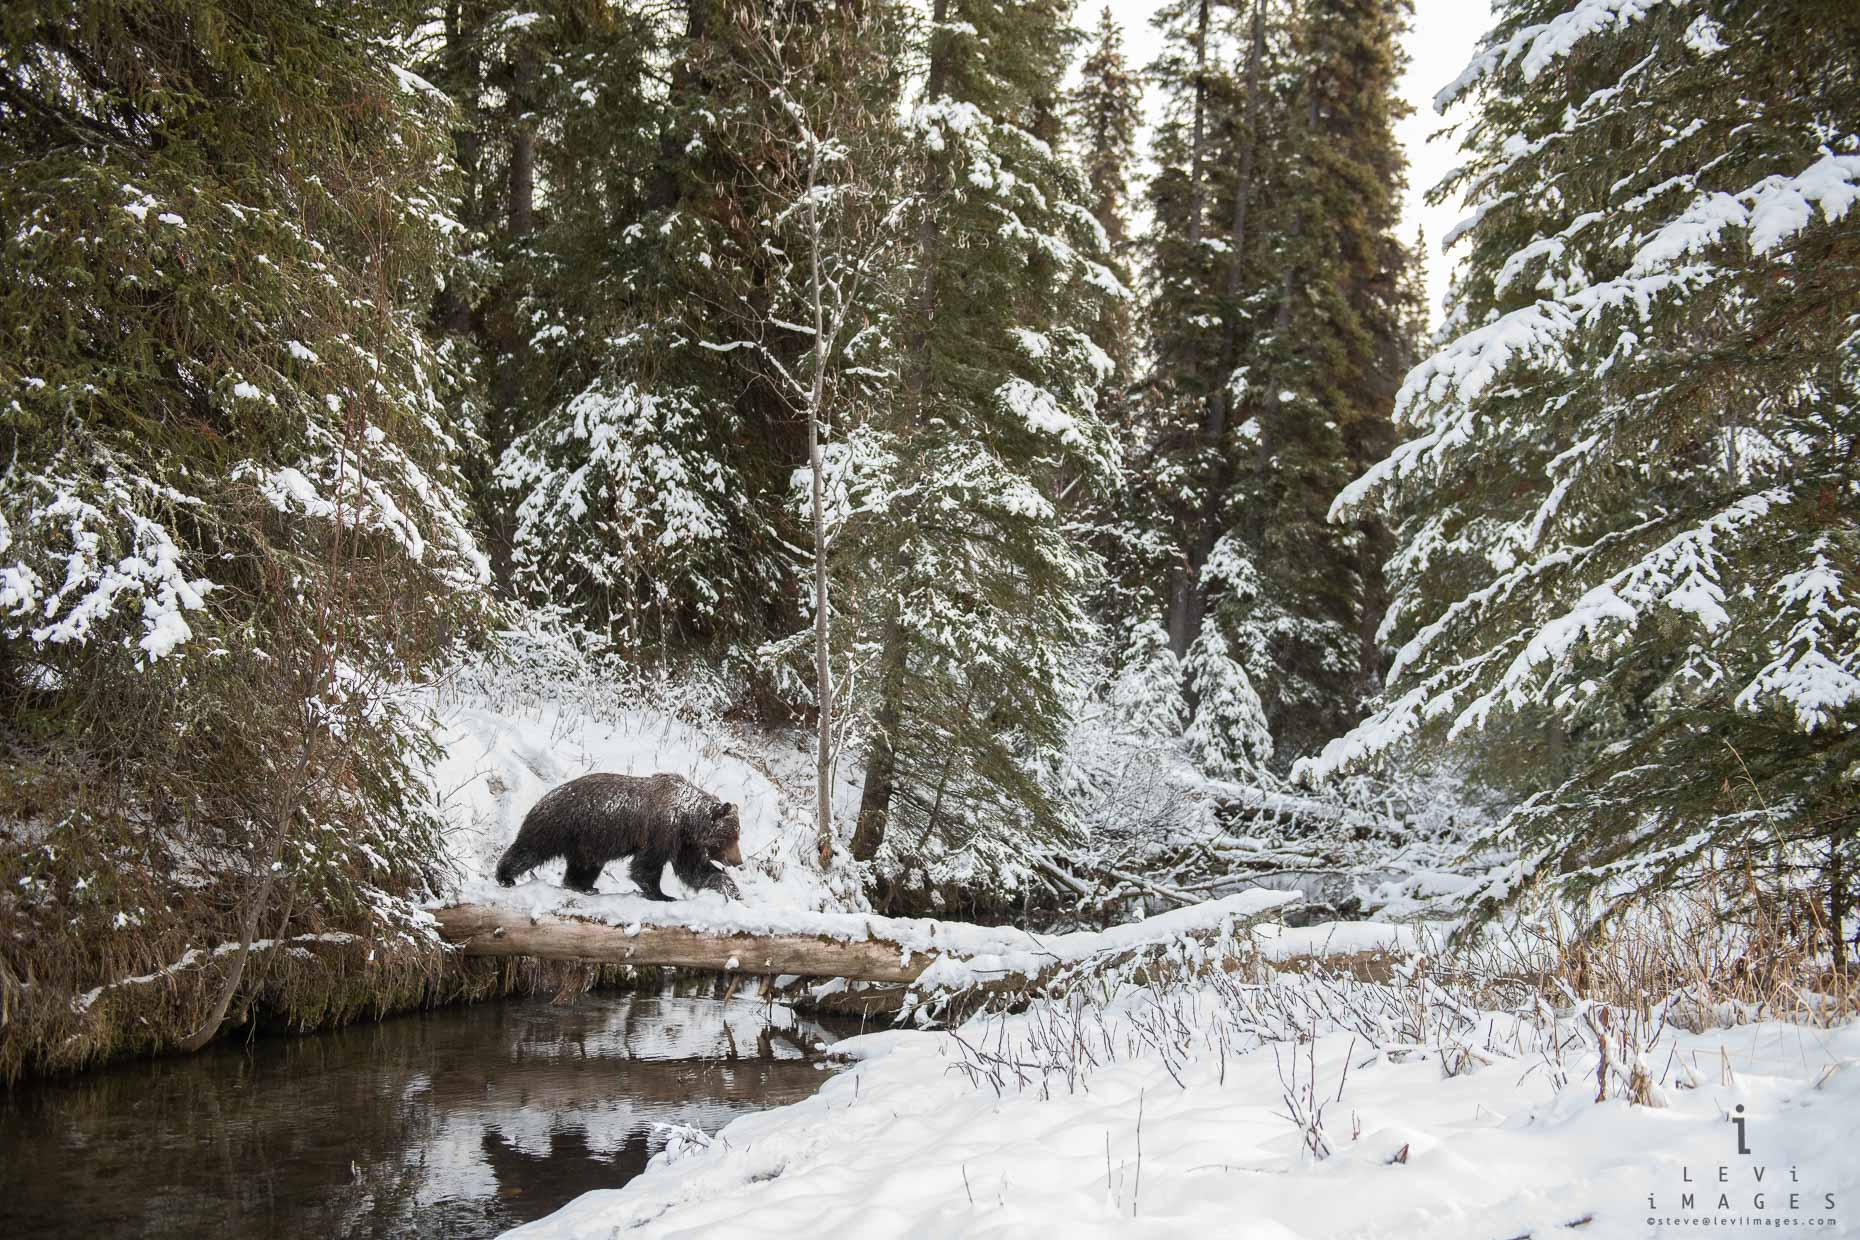 Brown Bear crosses log in Winter Wonderland